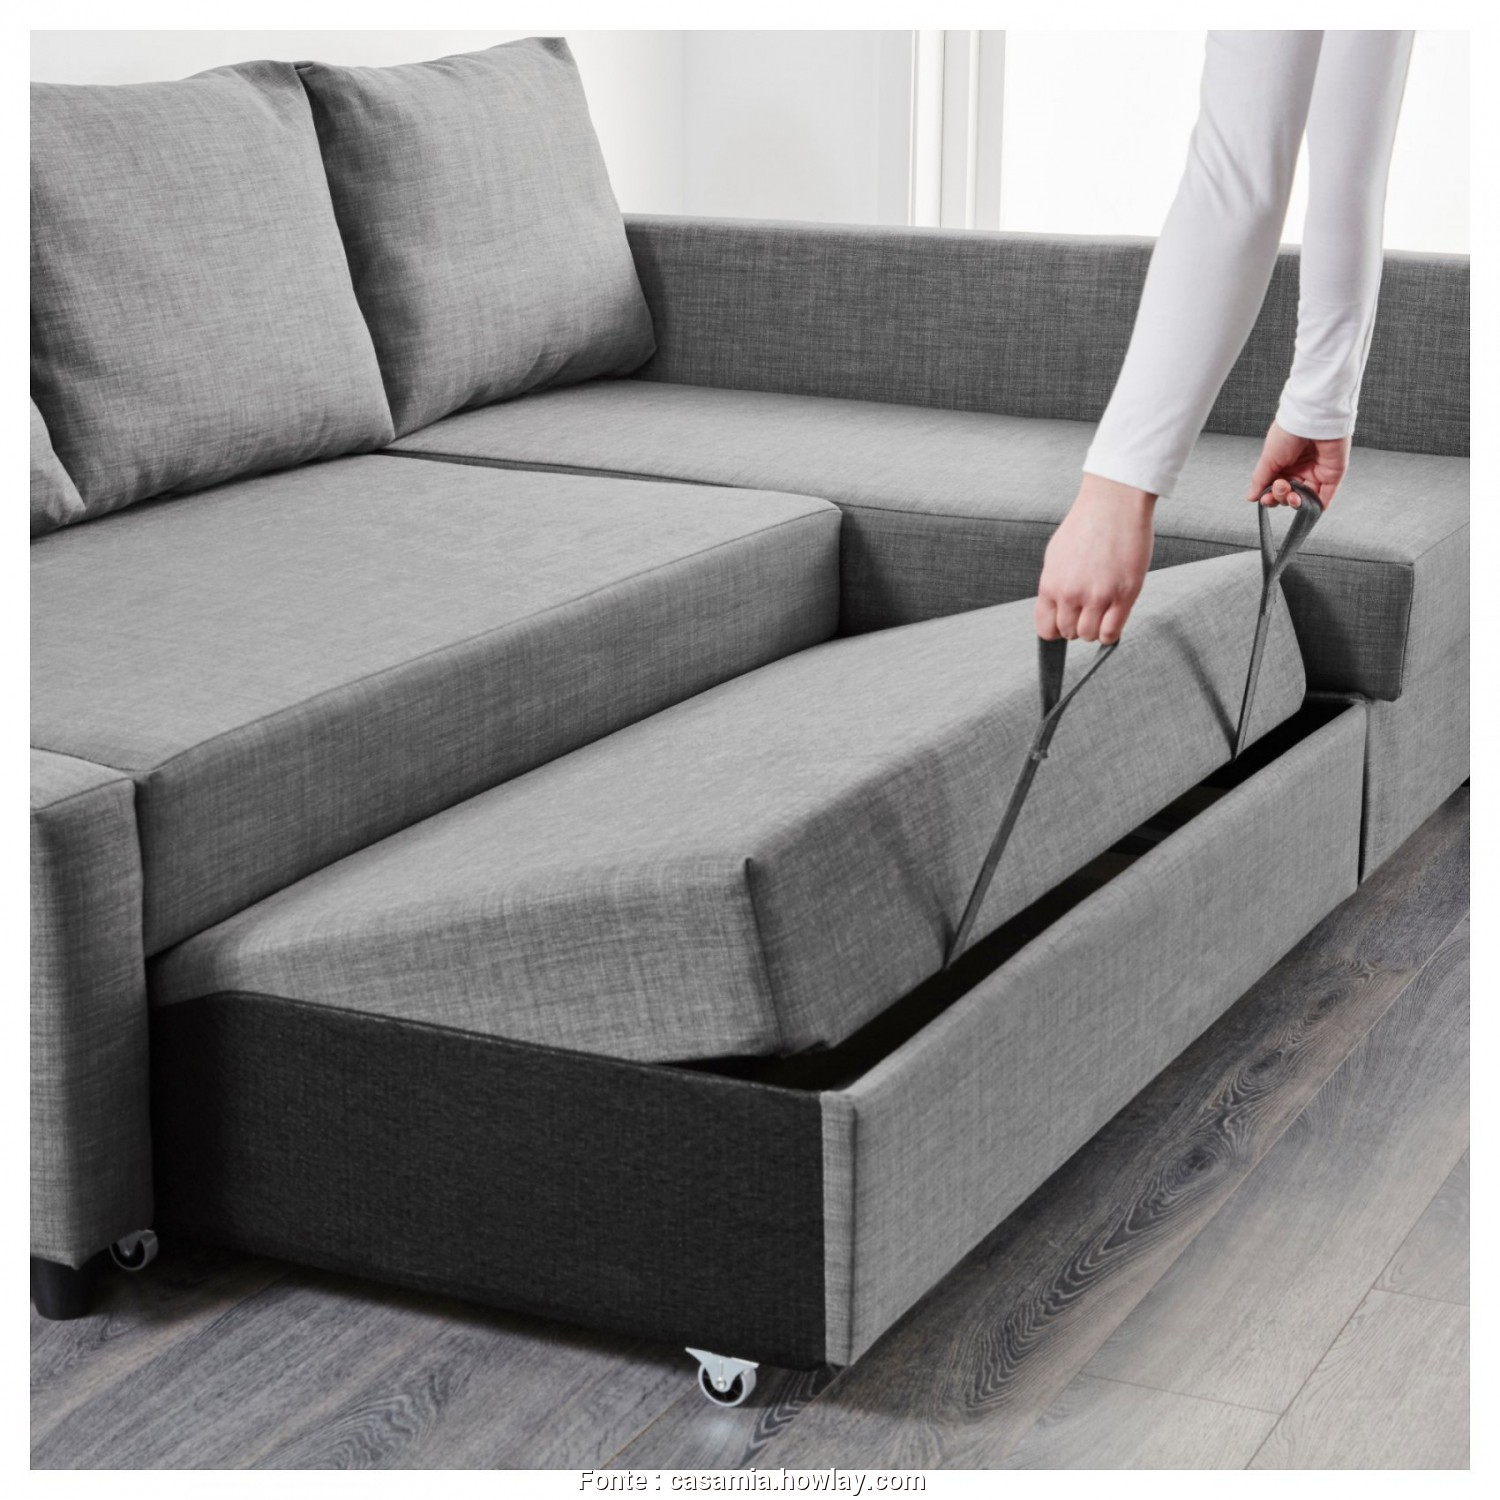 Divano Ikea Friheten Istruzioni, Bello Friheten Ikea, Interior Decor Furniture Ikea Friheten Review Twin Sofa